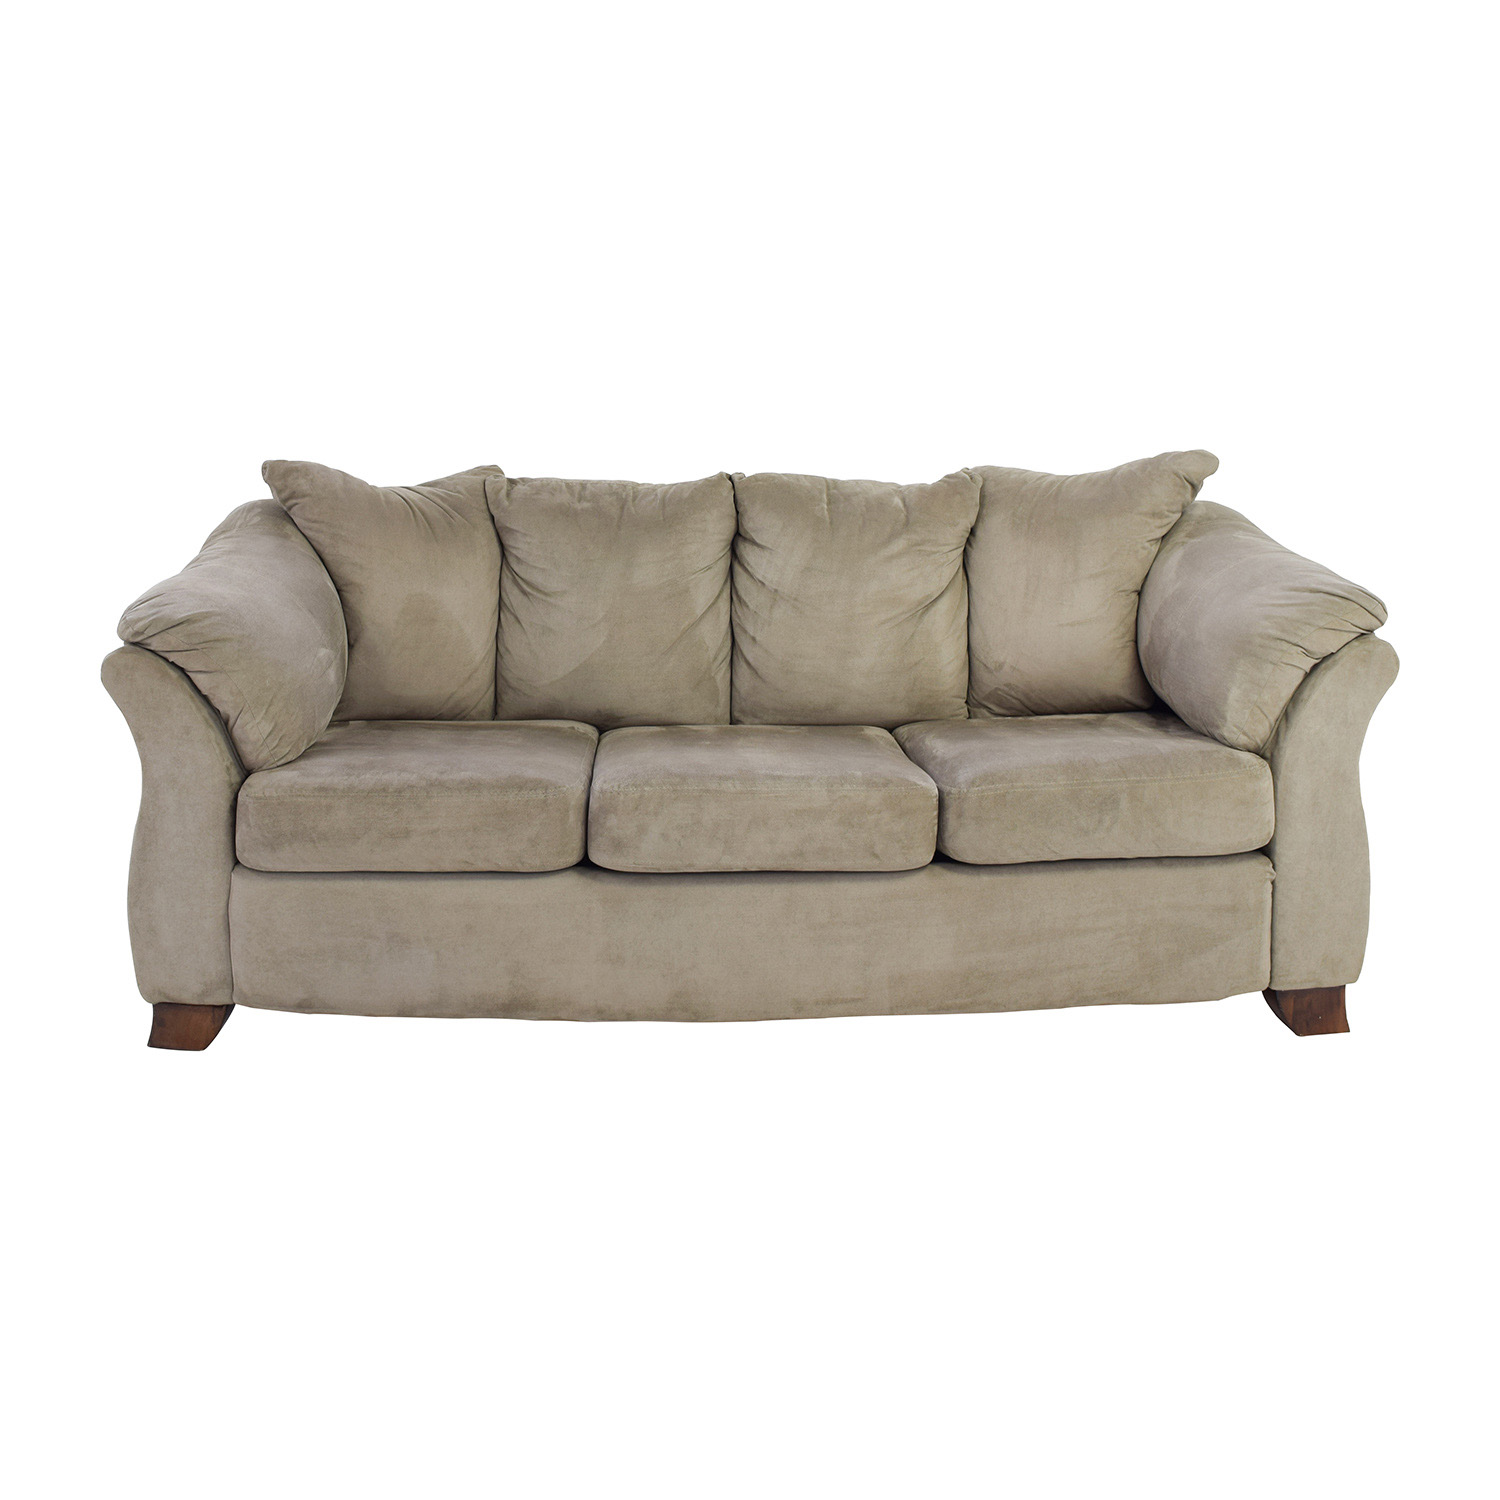 Unknown Brand Sage Green Sofa for sale